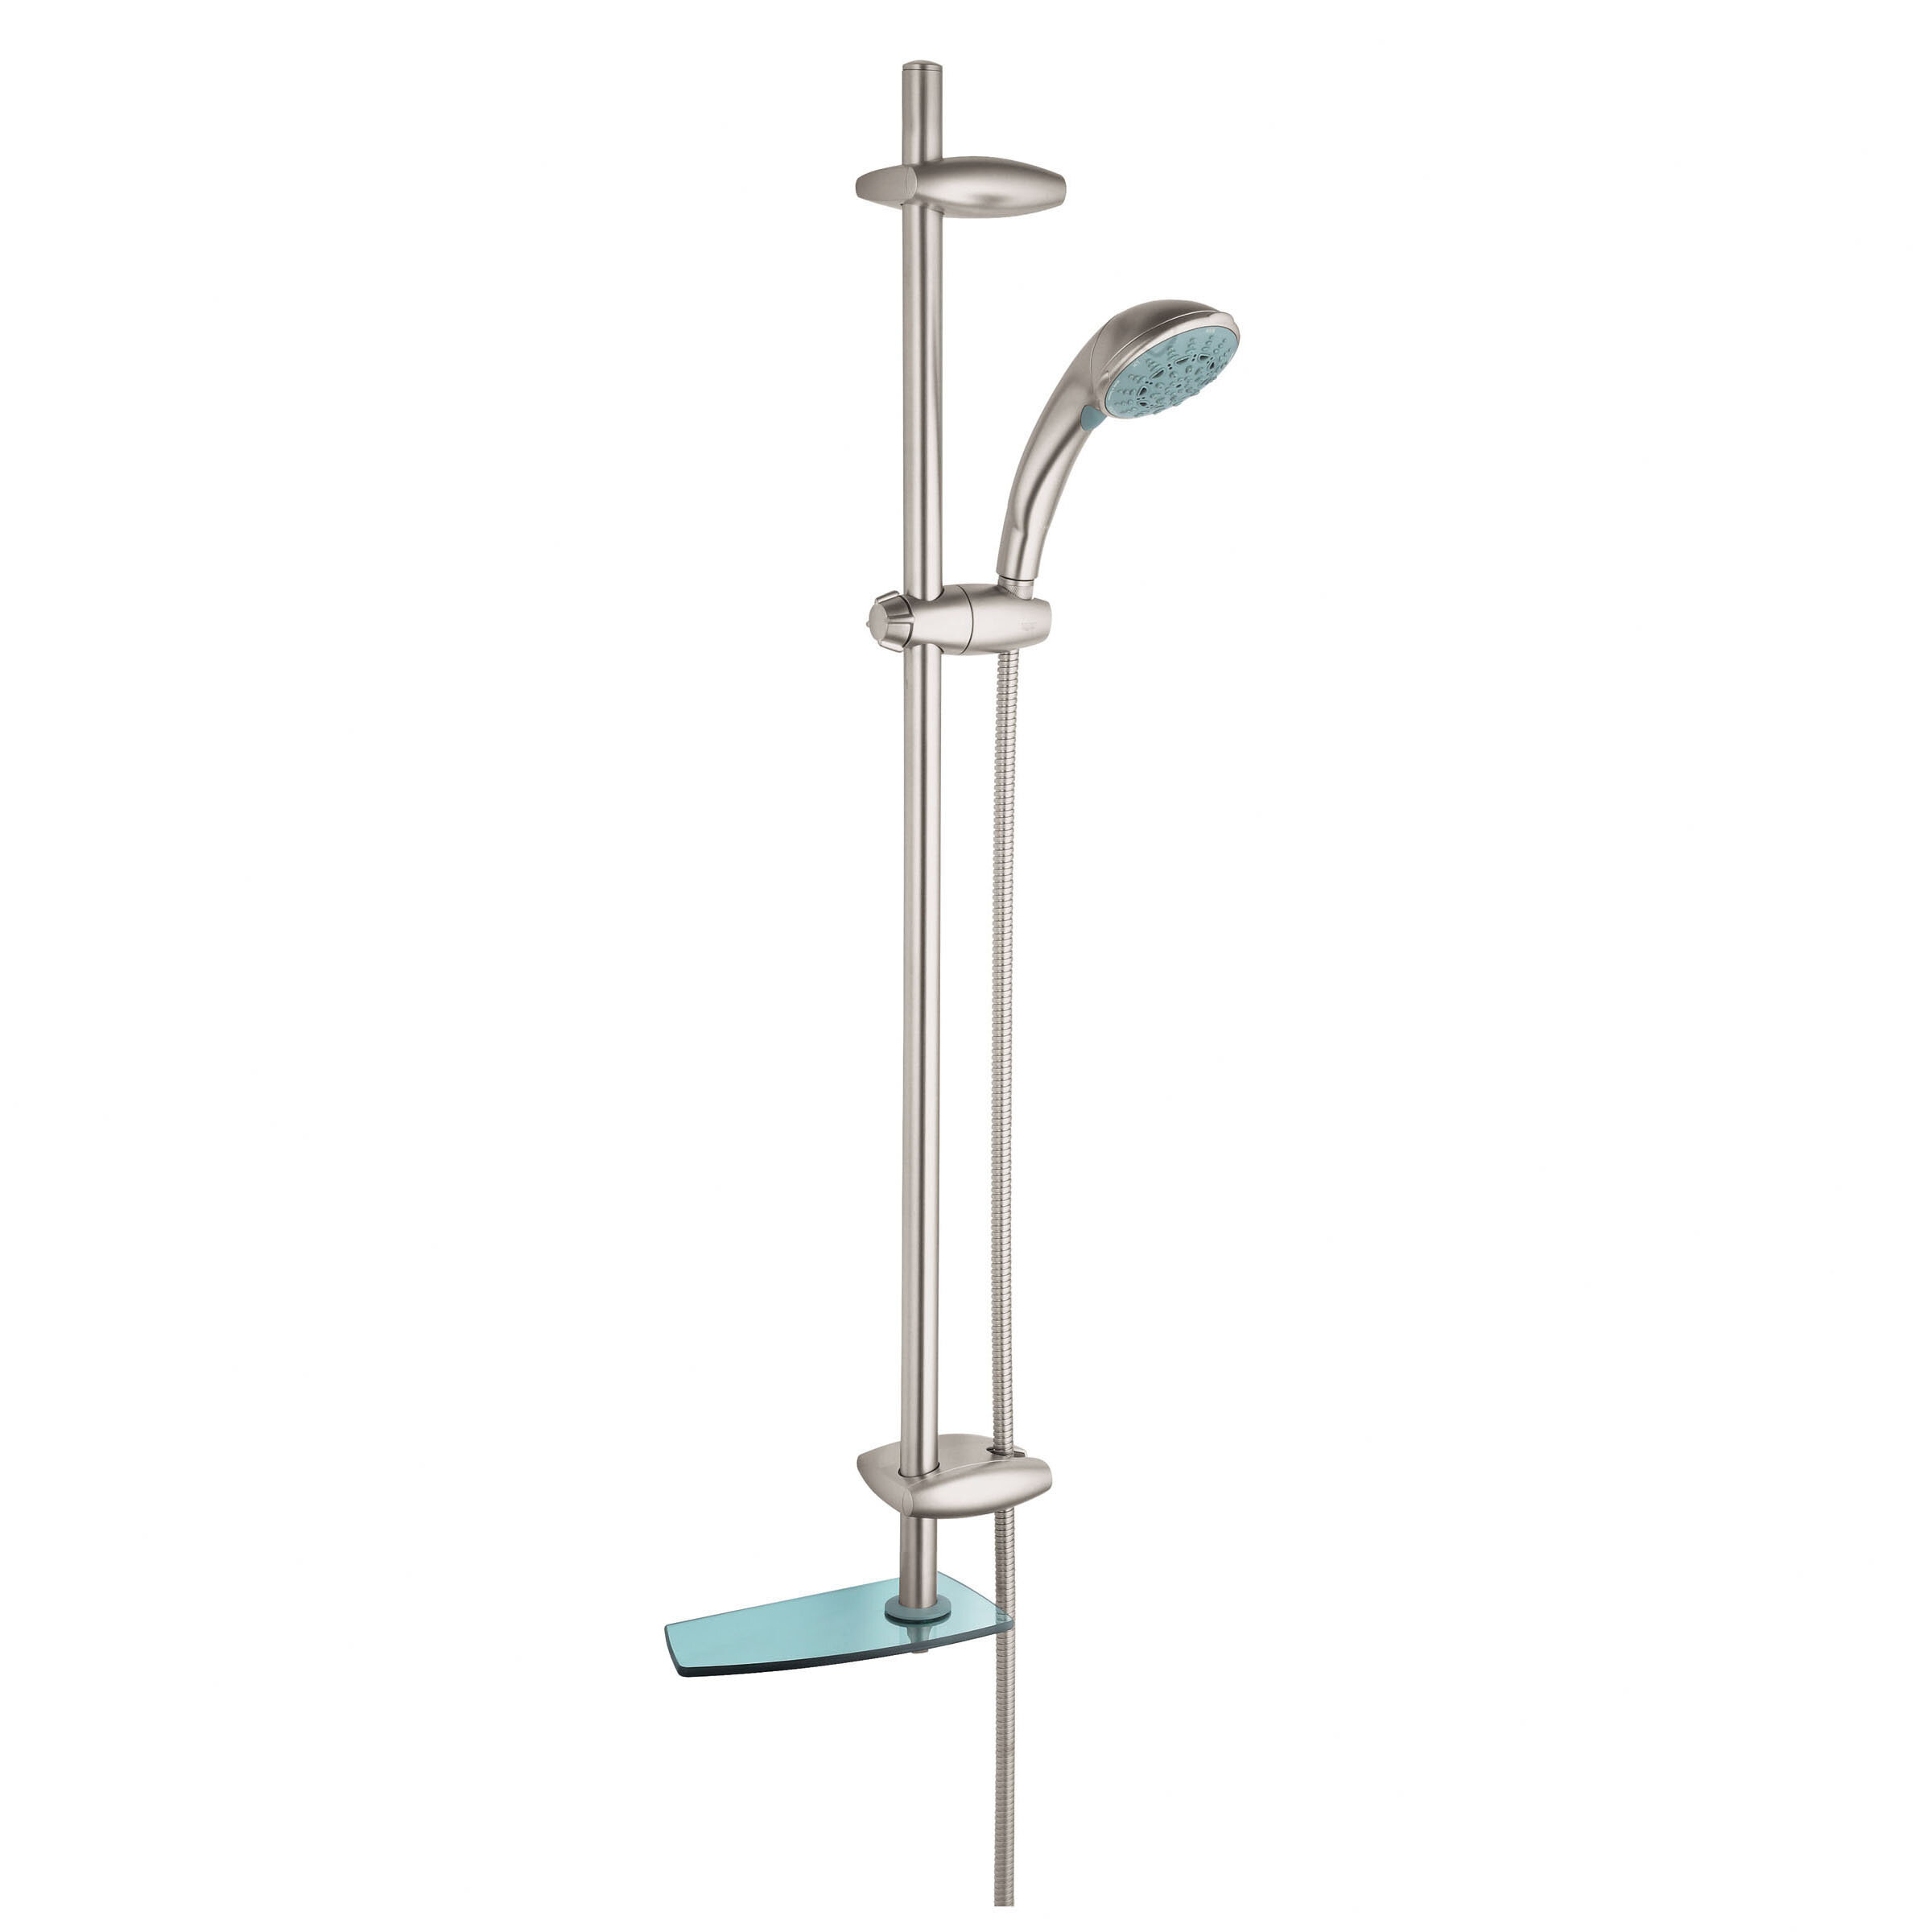 support mural superbath mixer de thermostatic douche system avec brands et mounting for colonne grohe with mitigeur wall euphoria thermostatique shower